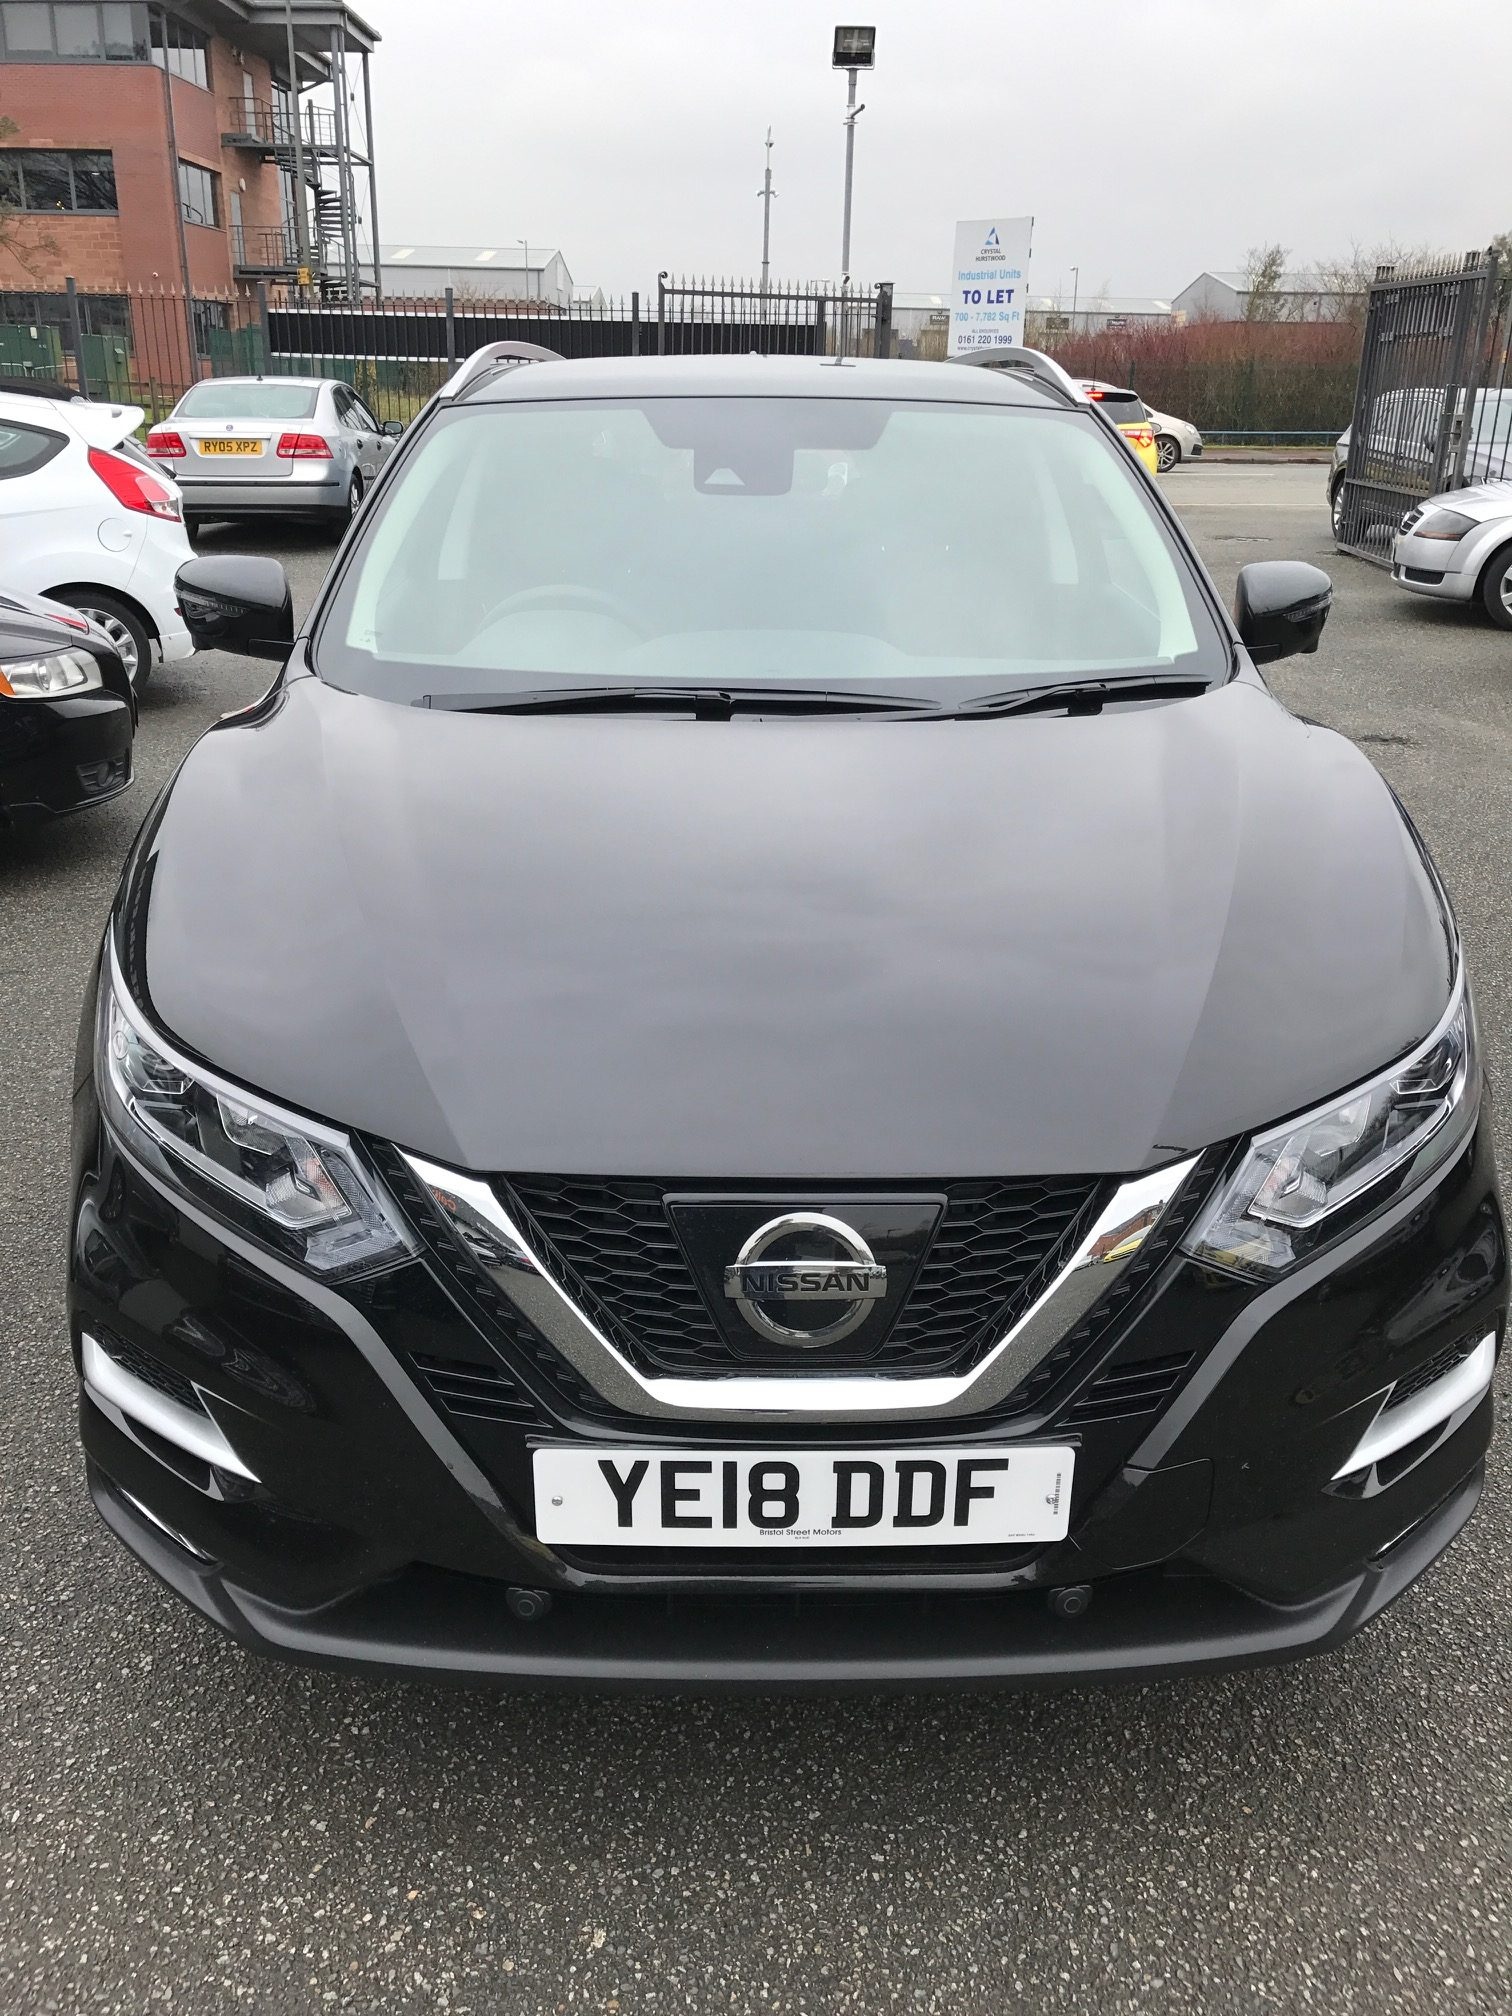 Nissan Qashqai Hatchback 1.2 Petrol DIG-T N-Connecta [glass roof pack] 5 door Manual Car Leasing Best Deals